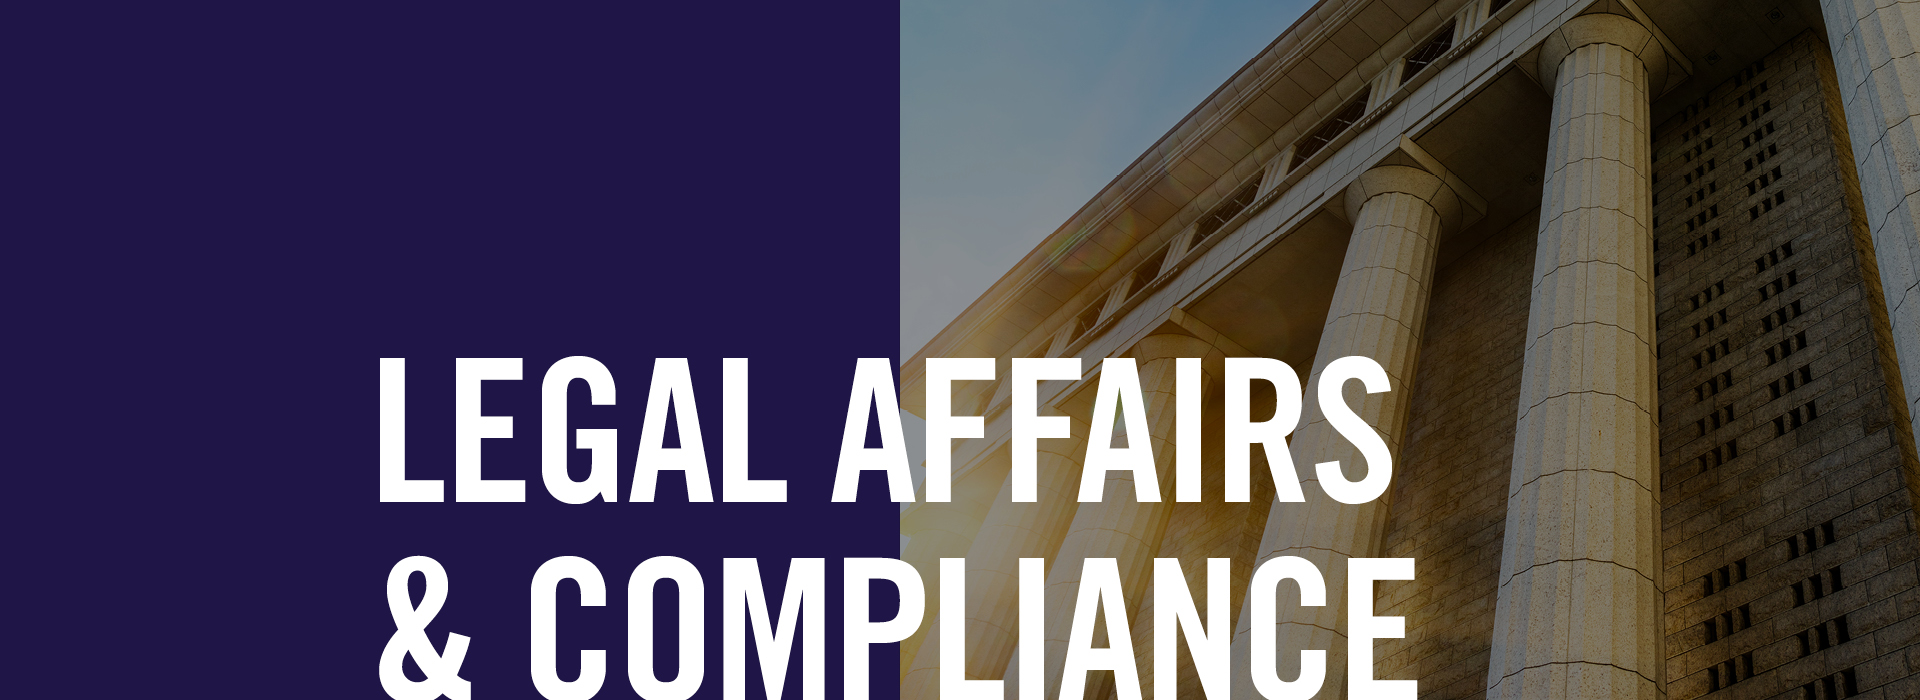 Legal Affairs and Compliance